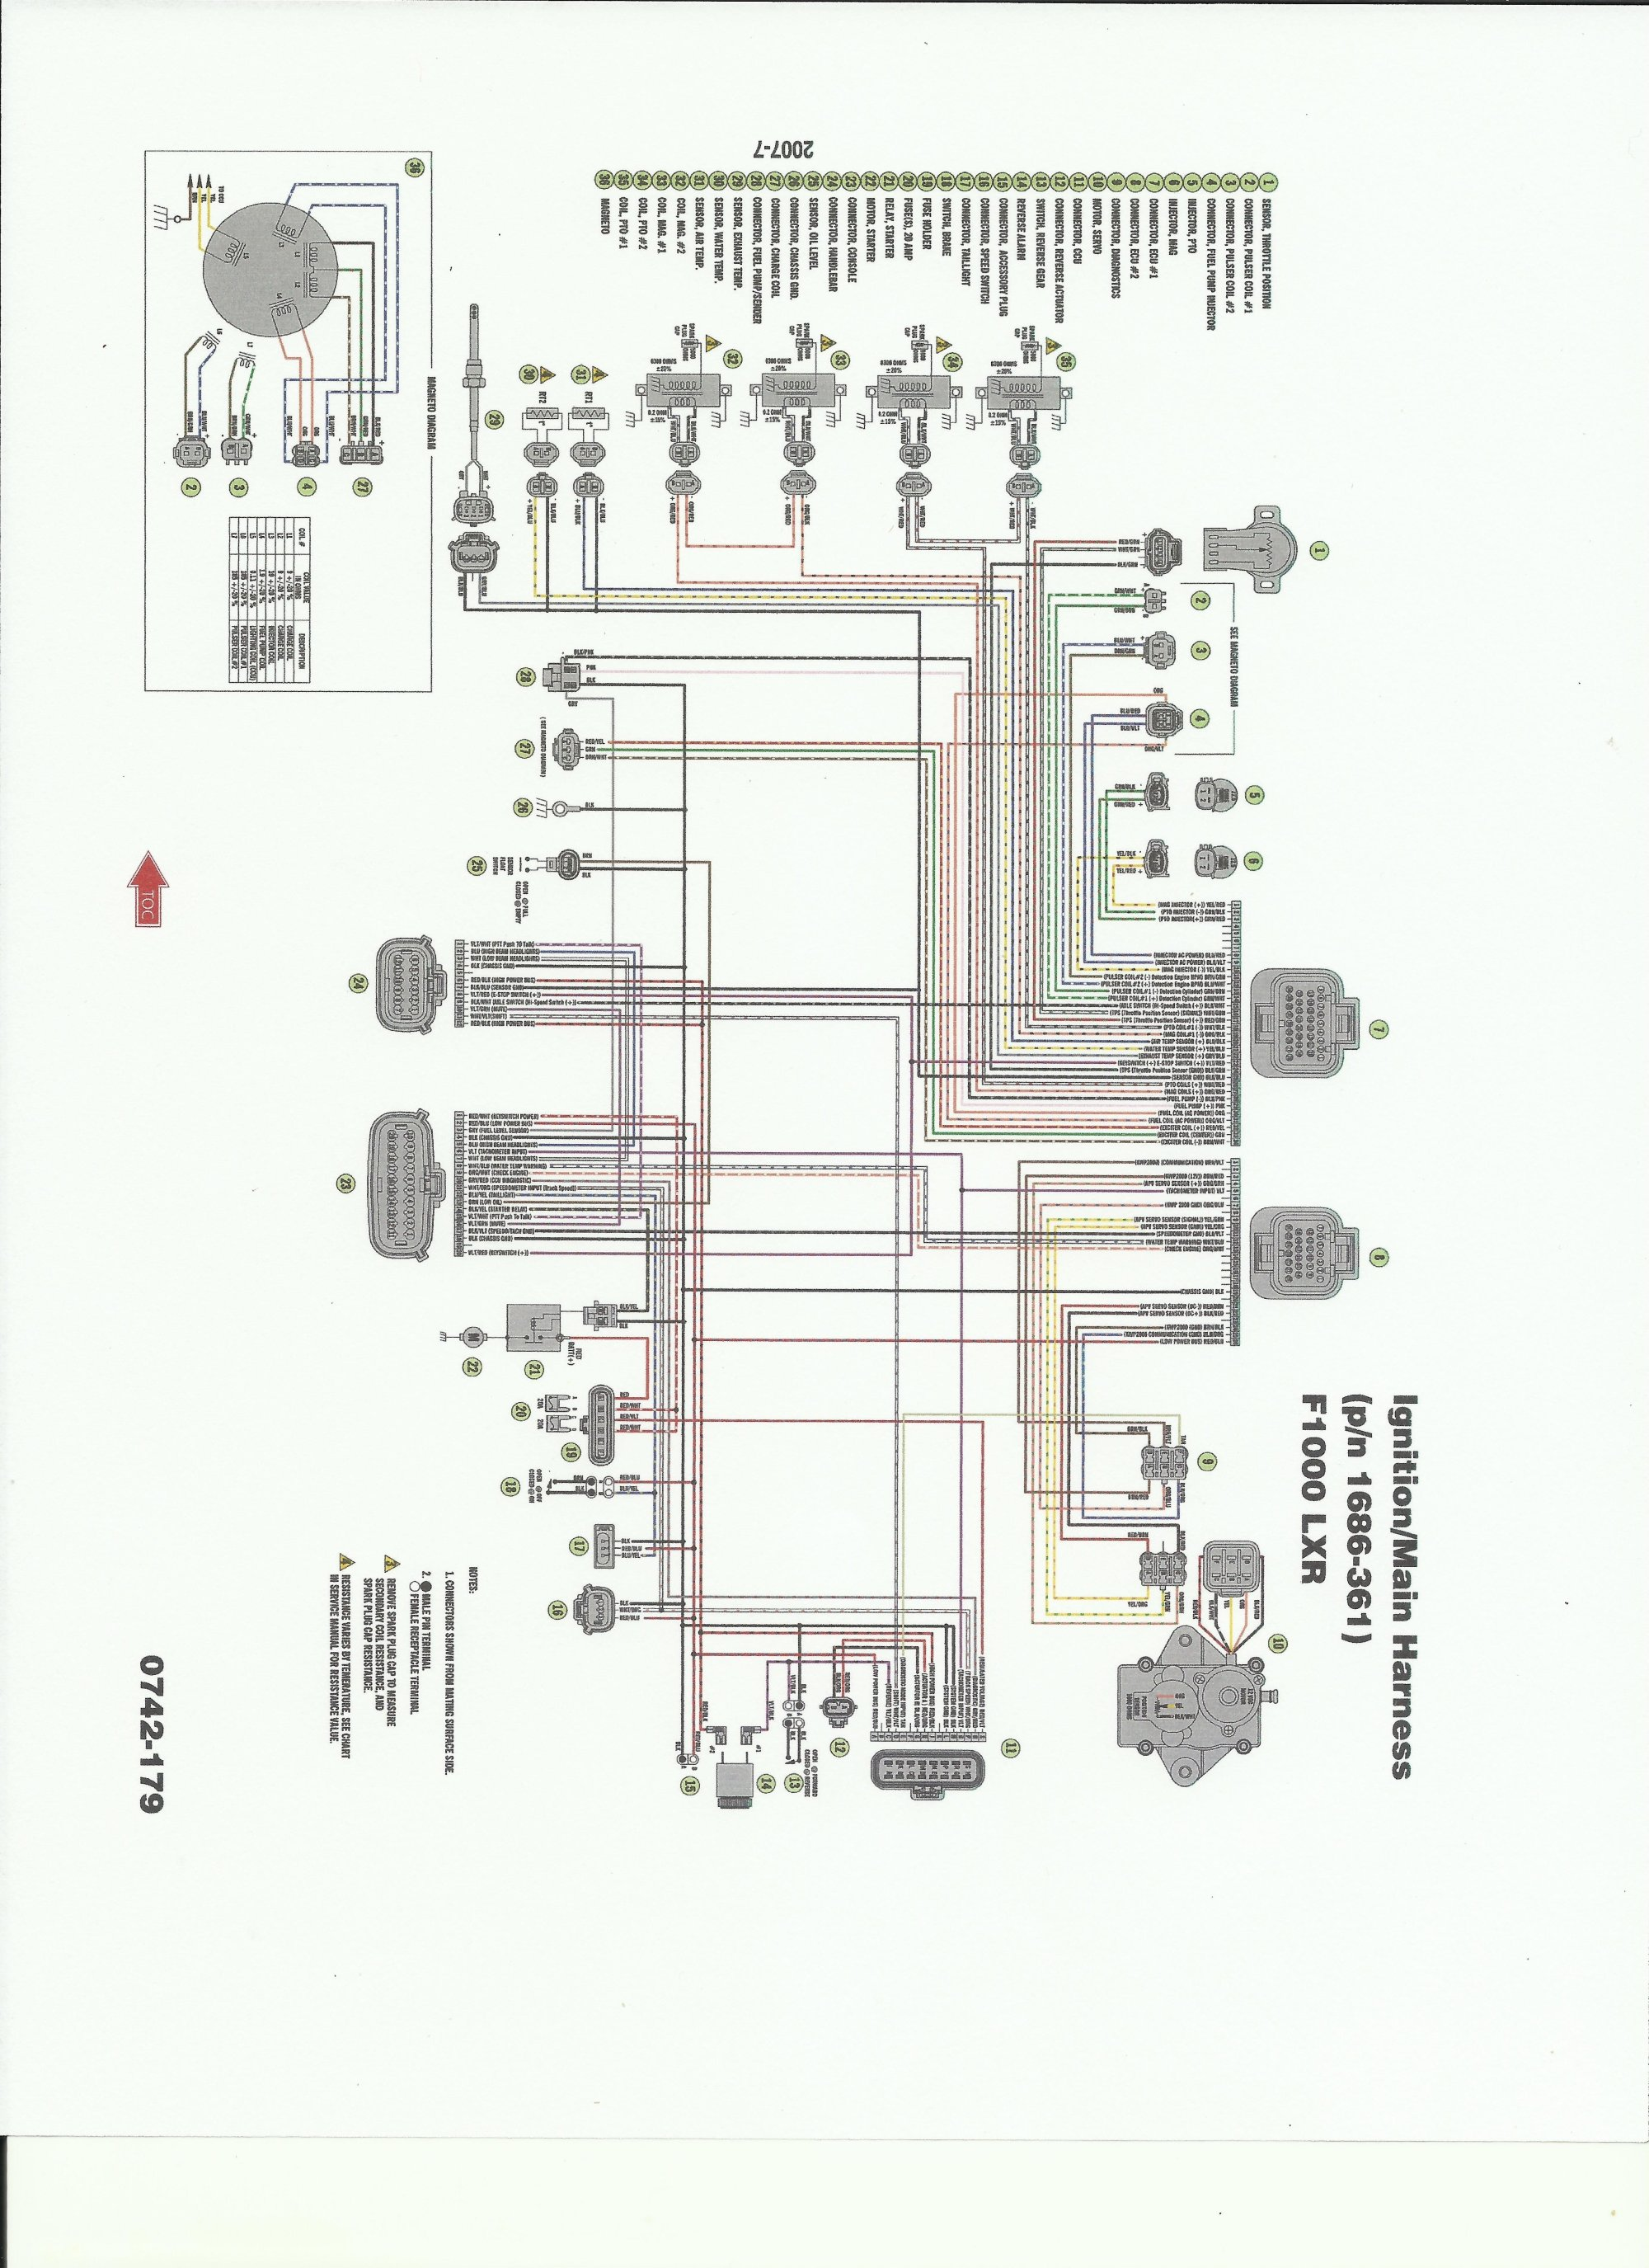 hight resolution of arctic cat f 800 wiring diagram schematic diagrams arctic cat 400 atv wiring diagram for 2004 arctic cat wiring diagram